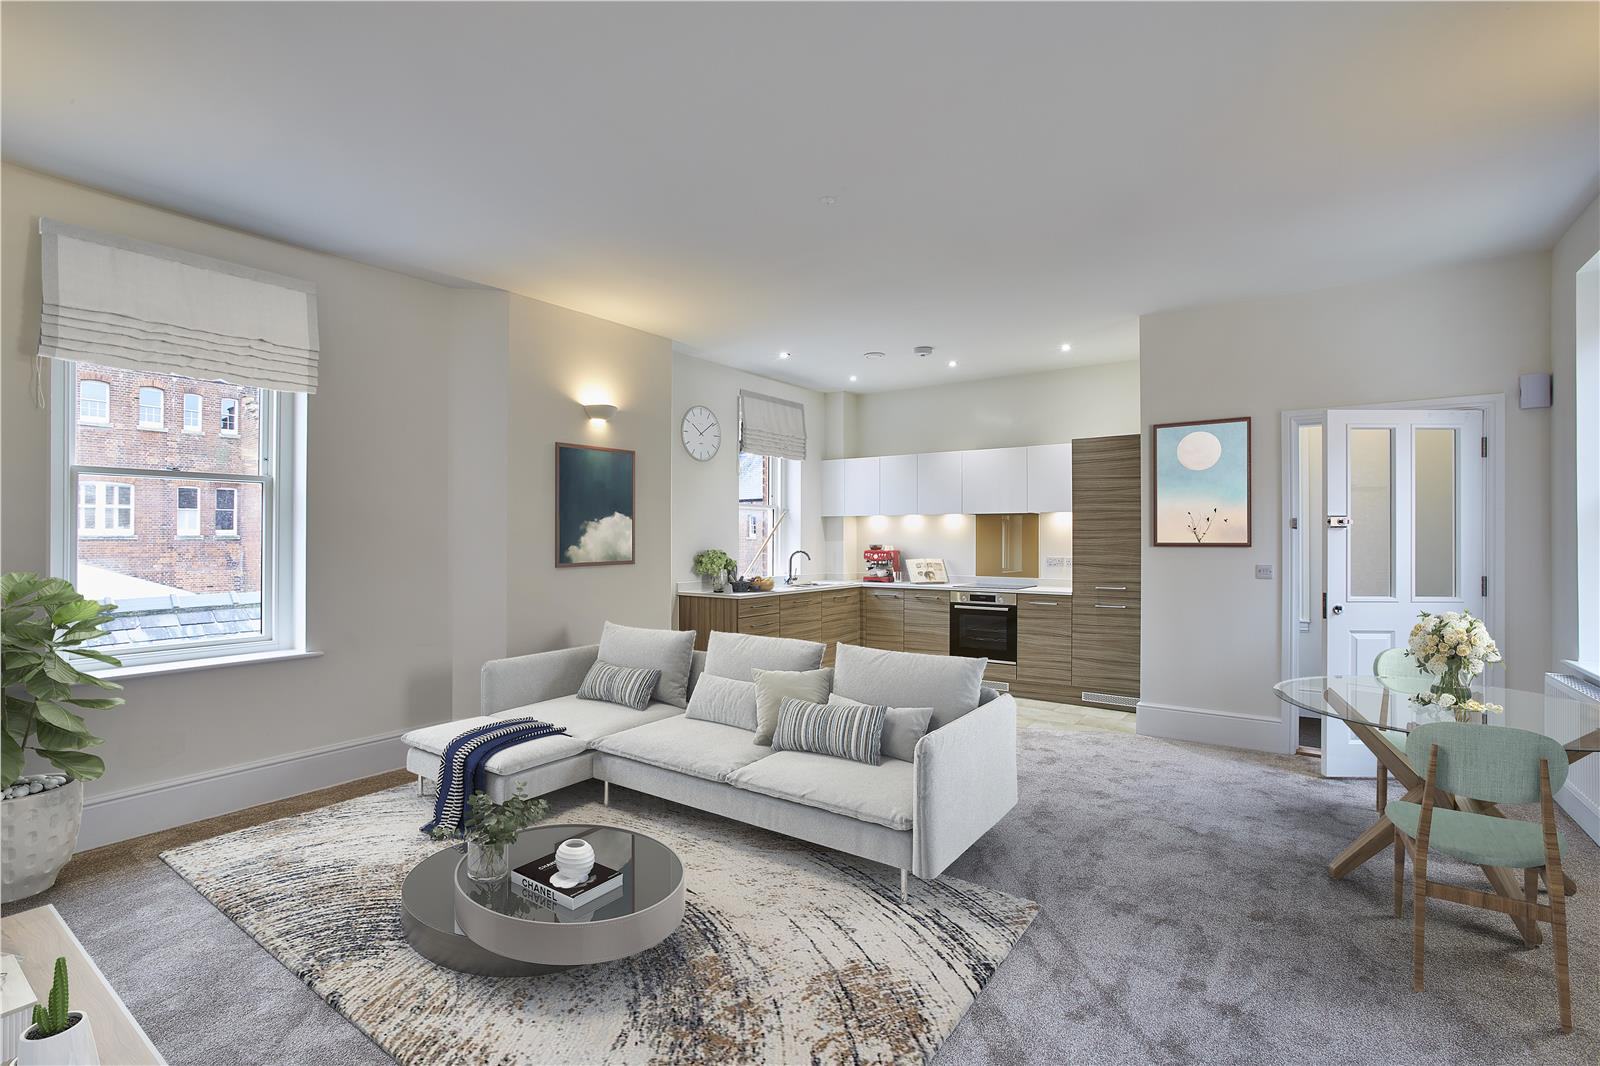 Fair Mile at Cholsey Meadows - Living/kitchen/dining interior